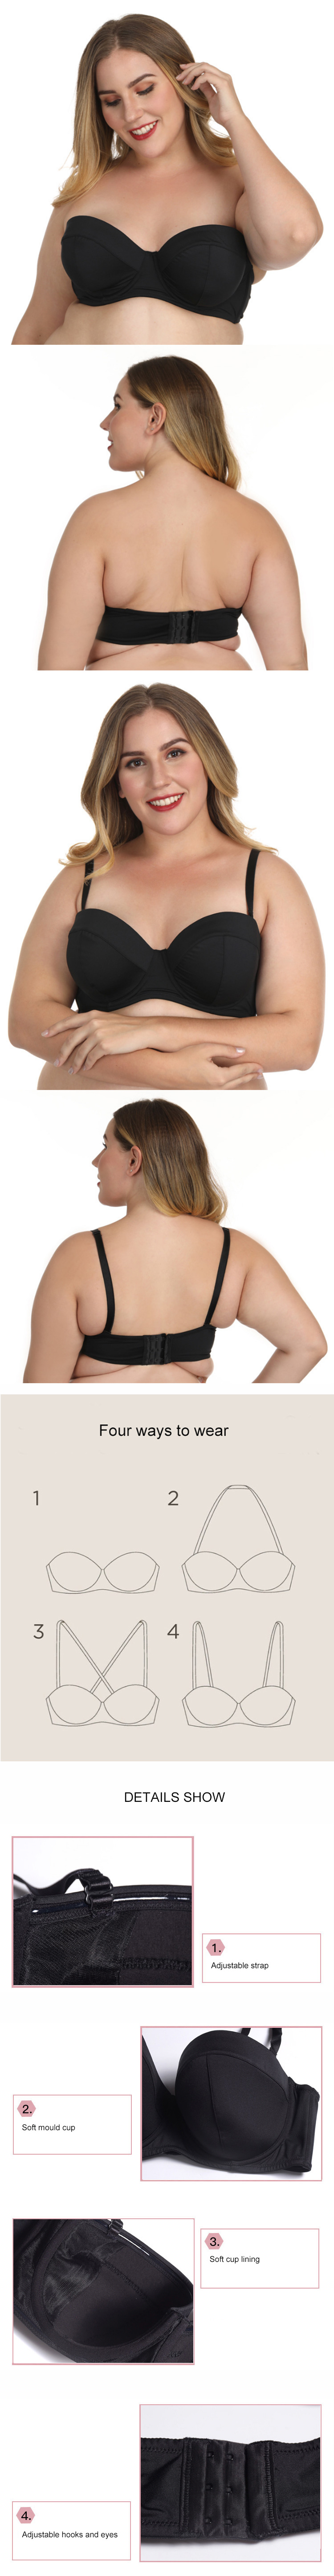 bras for larger bust